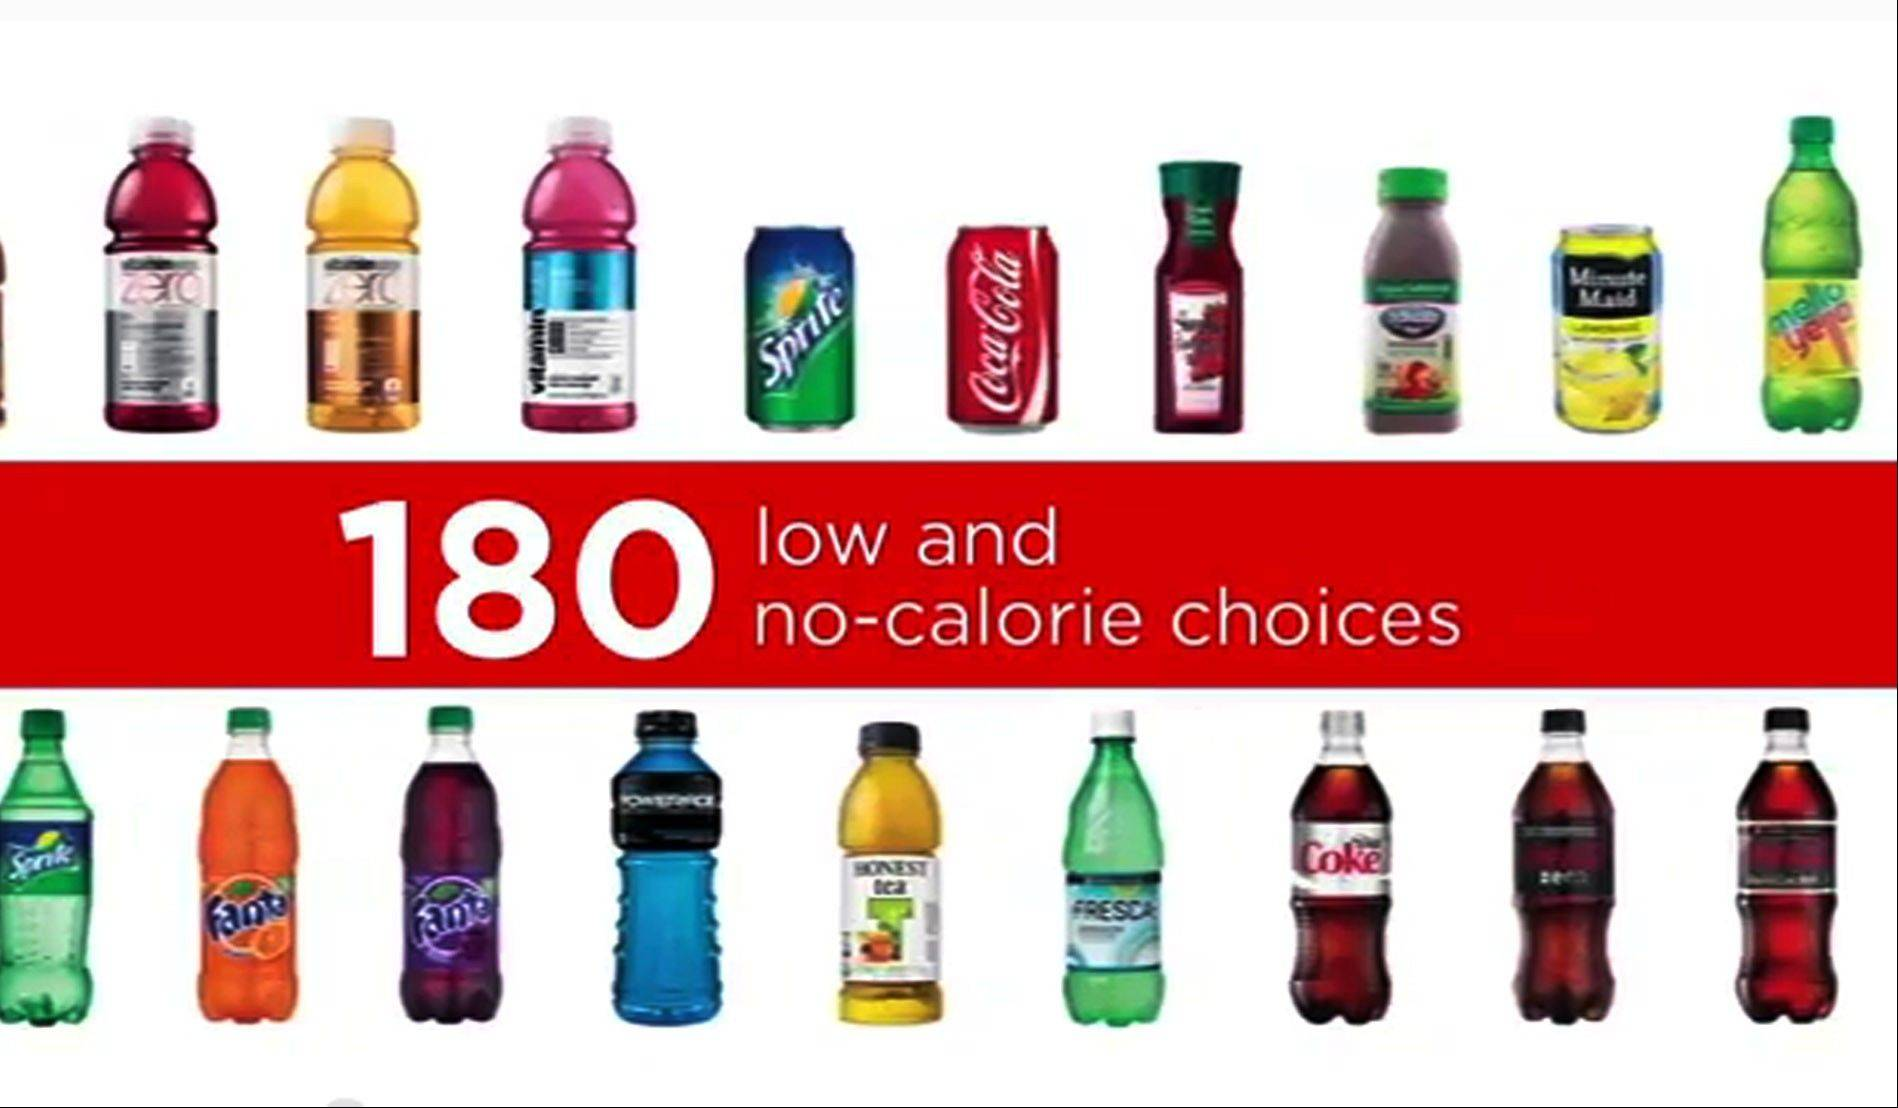 Coca-Cola on Monday said it will start airing a two-minute spot during the highest-rated shows on CNN, Fox News and MSNBC in hopes of flexing its marketing muscle in the debate over sodas and their impact on public health. The ad lays out Coca-Cola�s record of providing drinks with fewer calories over the years and notes that weight gain is the result of consuming too many calories of any kind, not just soda.